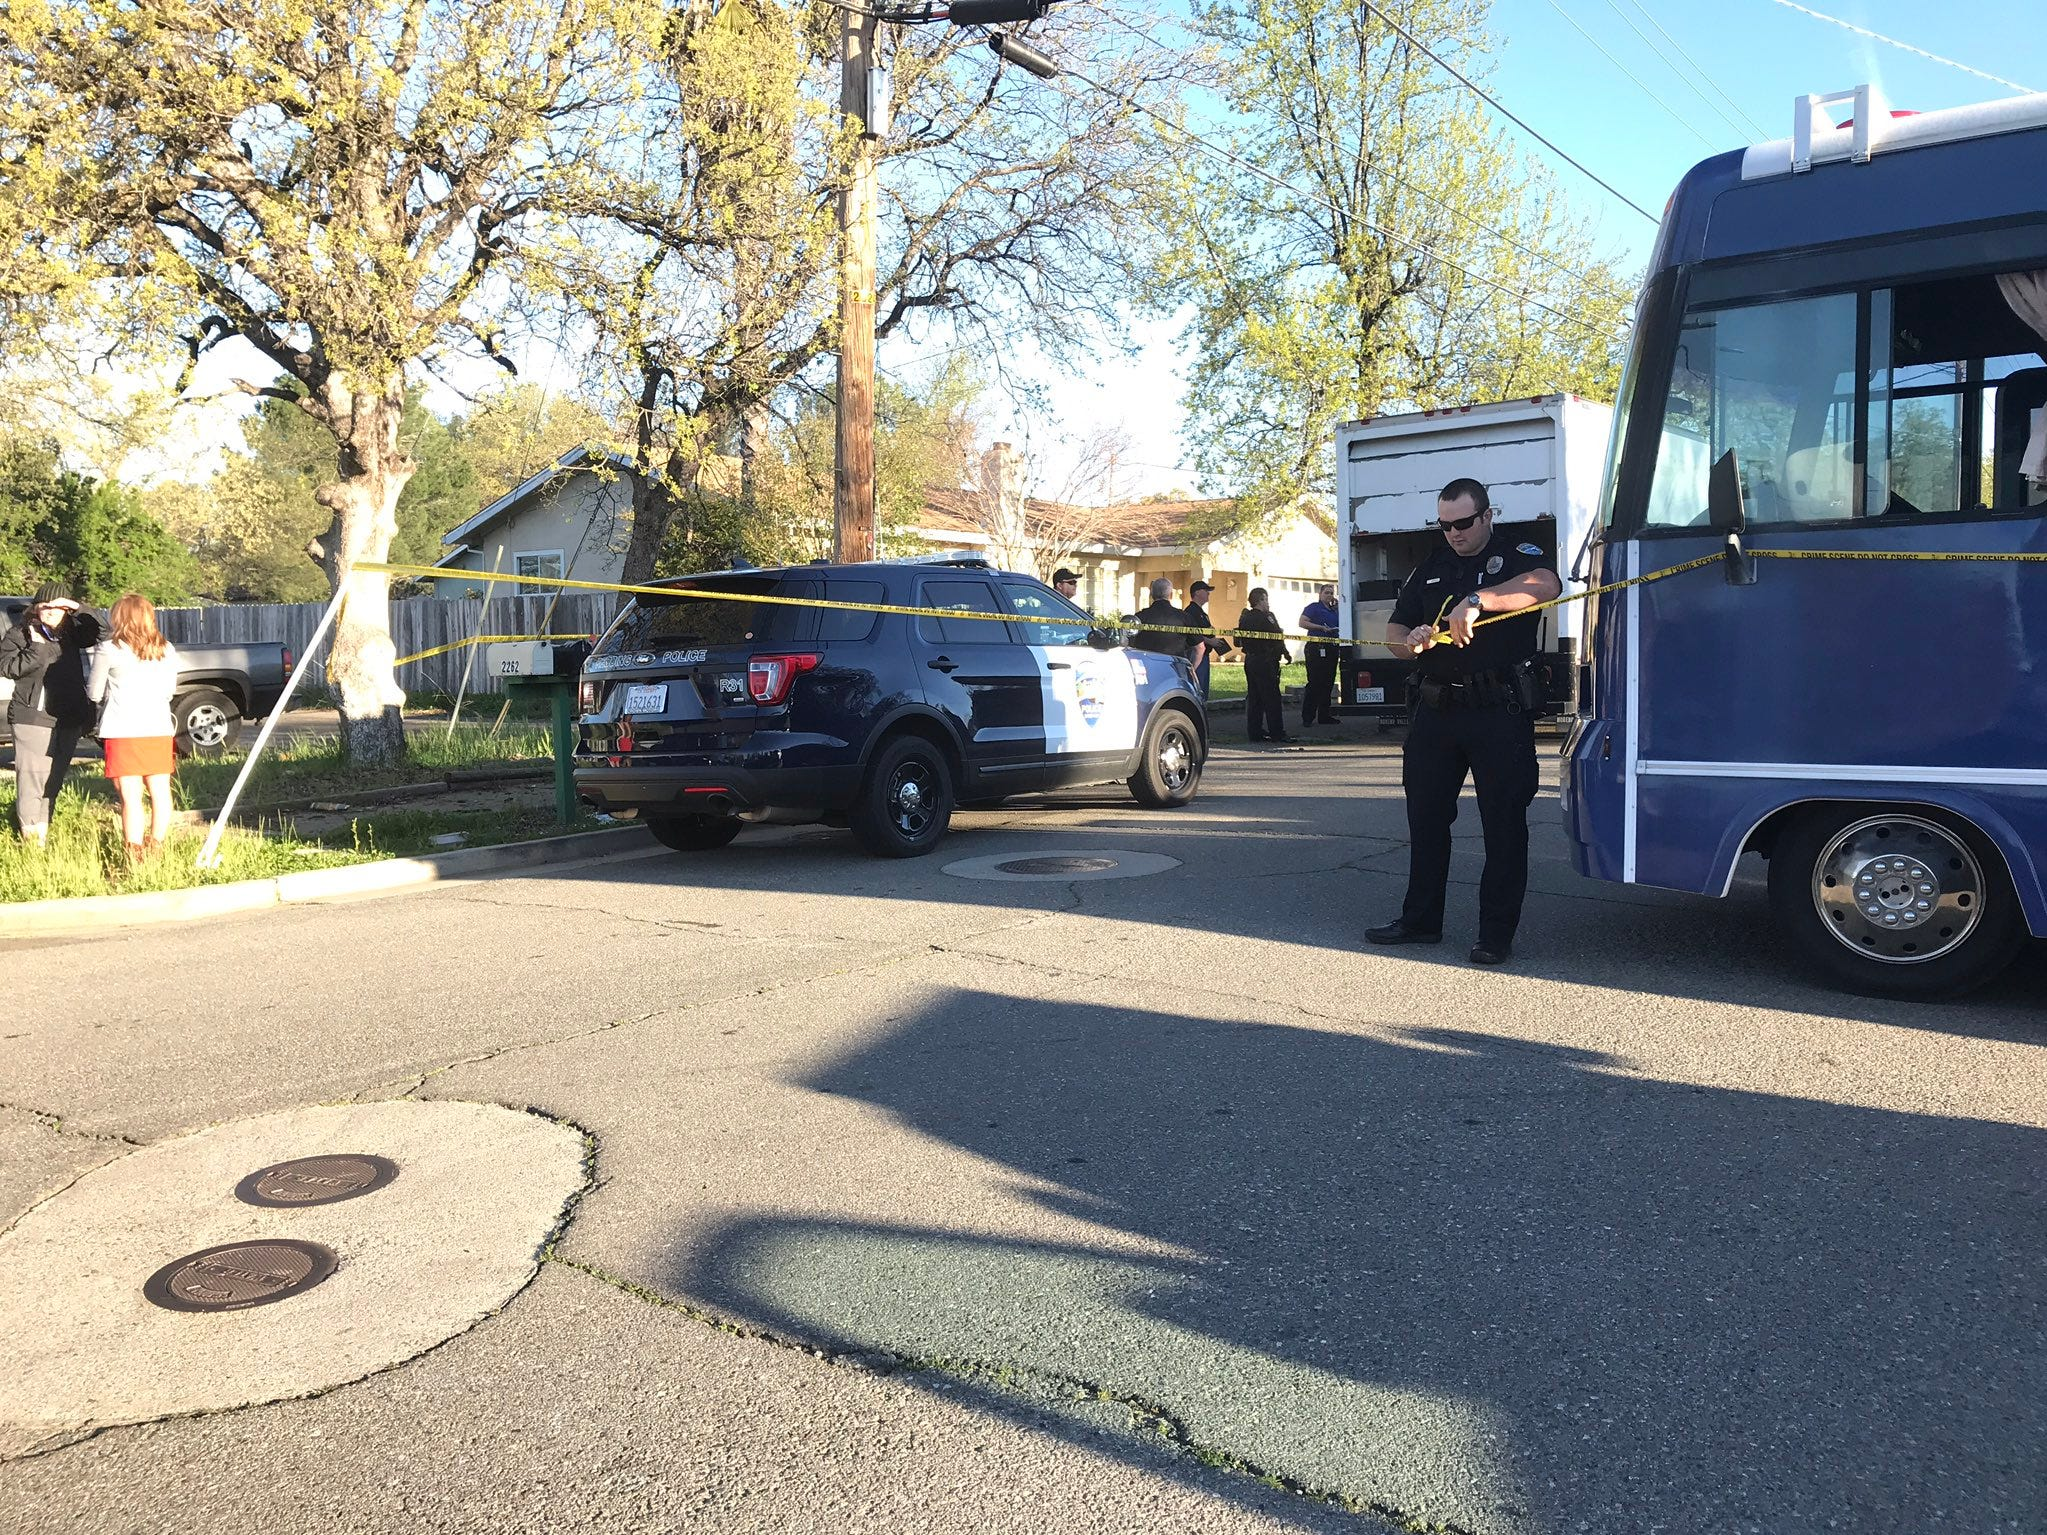 A Redding police officer on Friday, April 12, 2019 cordoned off a neighborhood in the area of Oxford Road and Derby Lane. A man has holed himself up inside a home in the 2100 block of Oxford.